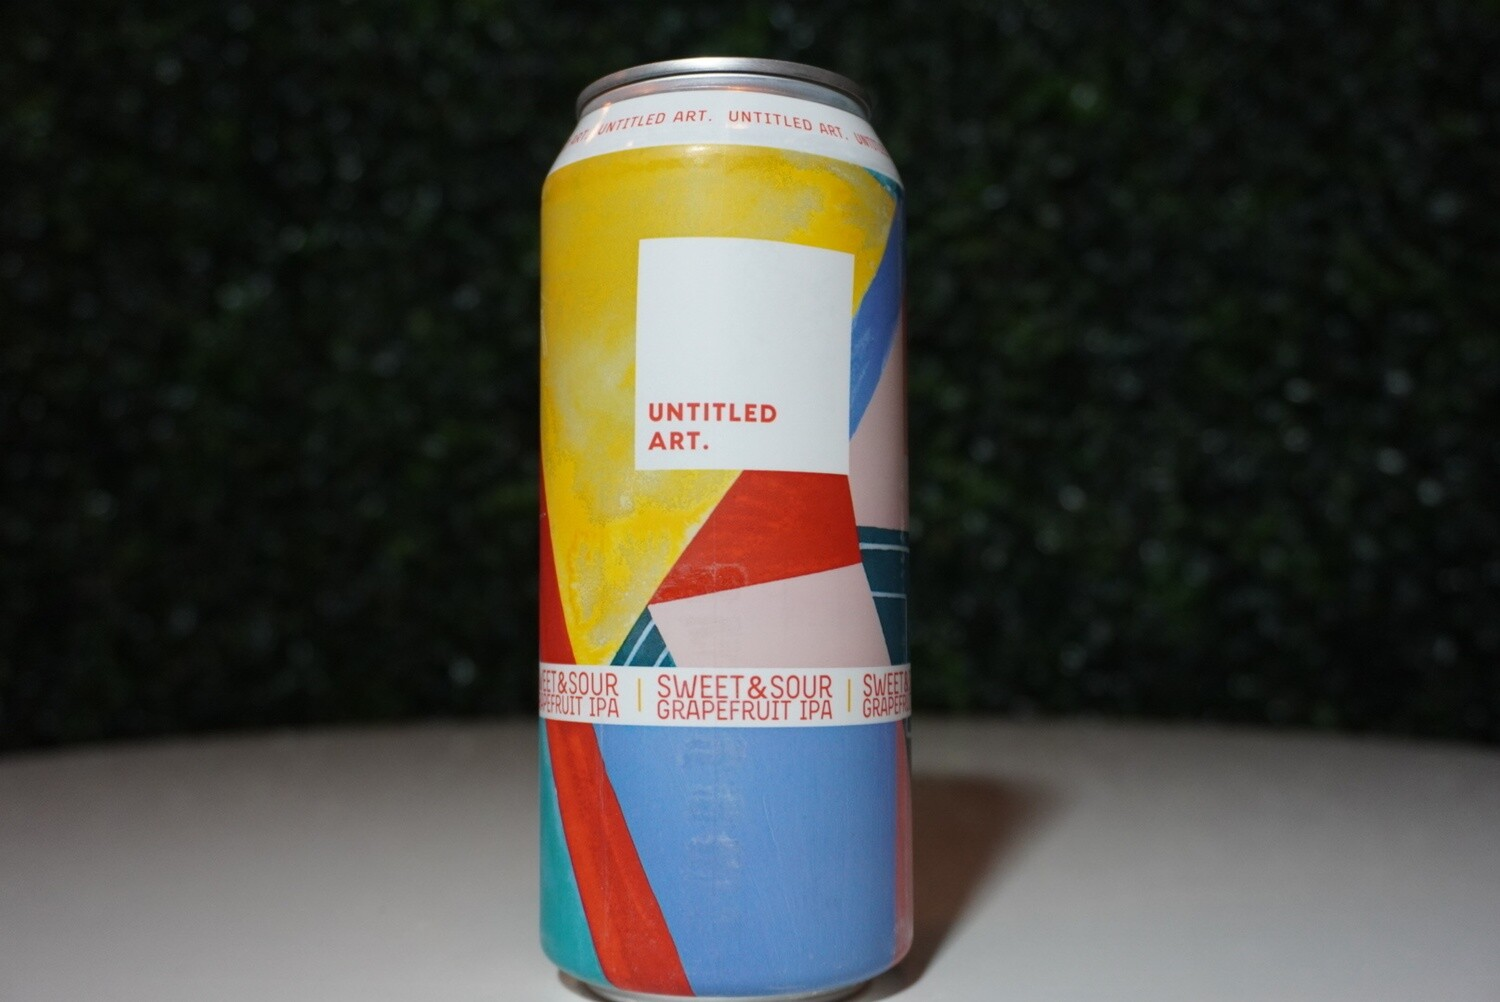 Untitled Art - Sweet and Sour Grapefruit IPA - IPA - 7% ABV - 16oz Can